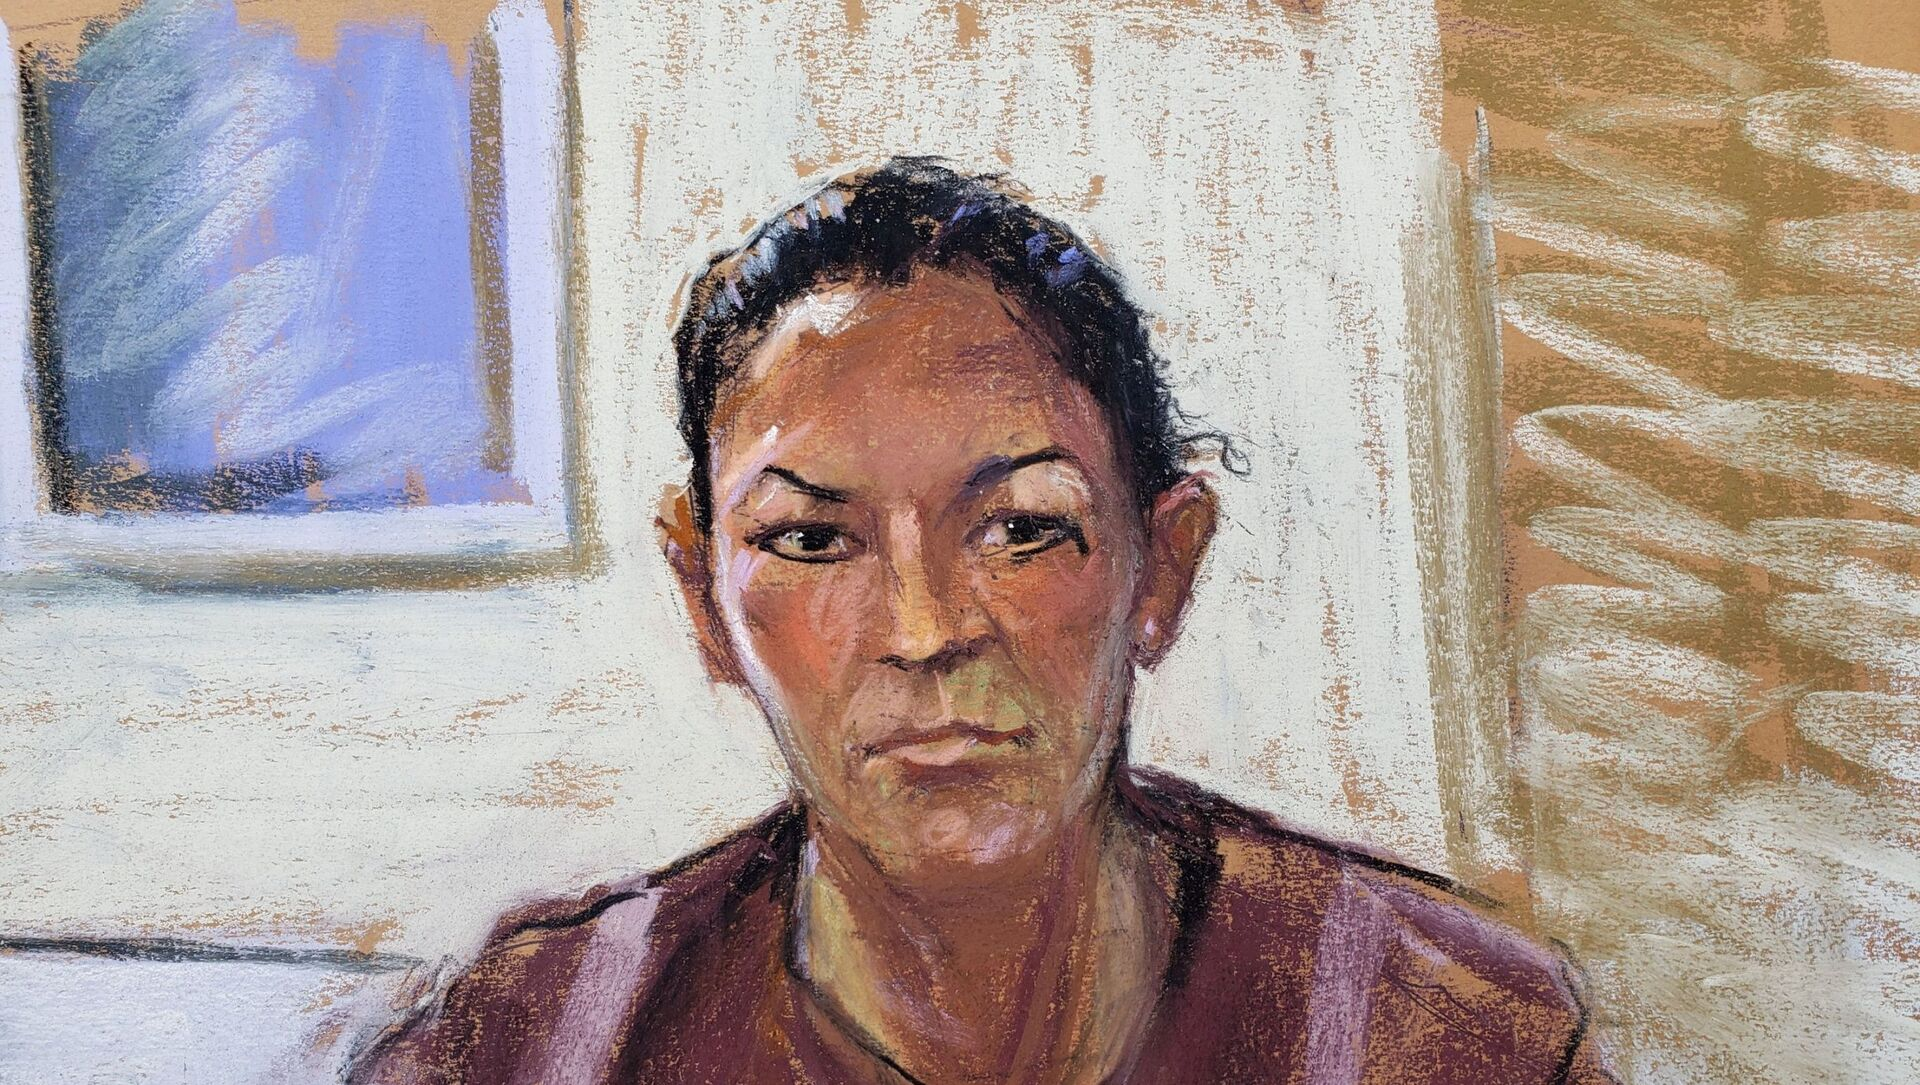 Ghislaine Maxwell appears via video link during her arraignment hearing where she was denied bail for her role aiding Jeffrey Epstein to recruit and eventually abuse teenage girls, in Manhattan Federal Court, in the Manhattan borough of New York City, 14 July 2020 in this courtroom sketch - Sputnik International, 1920, 03.07.2021